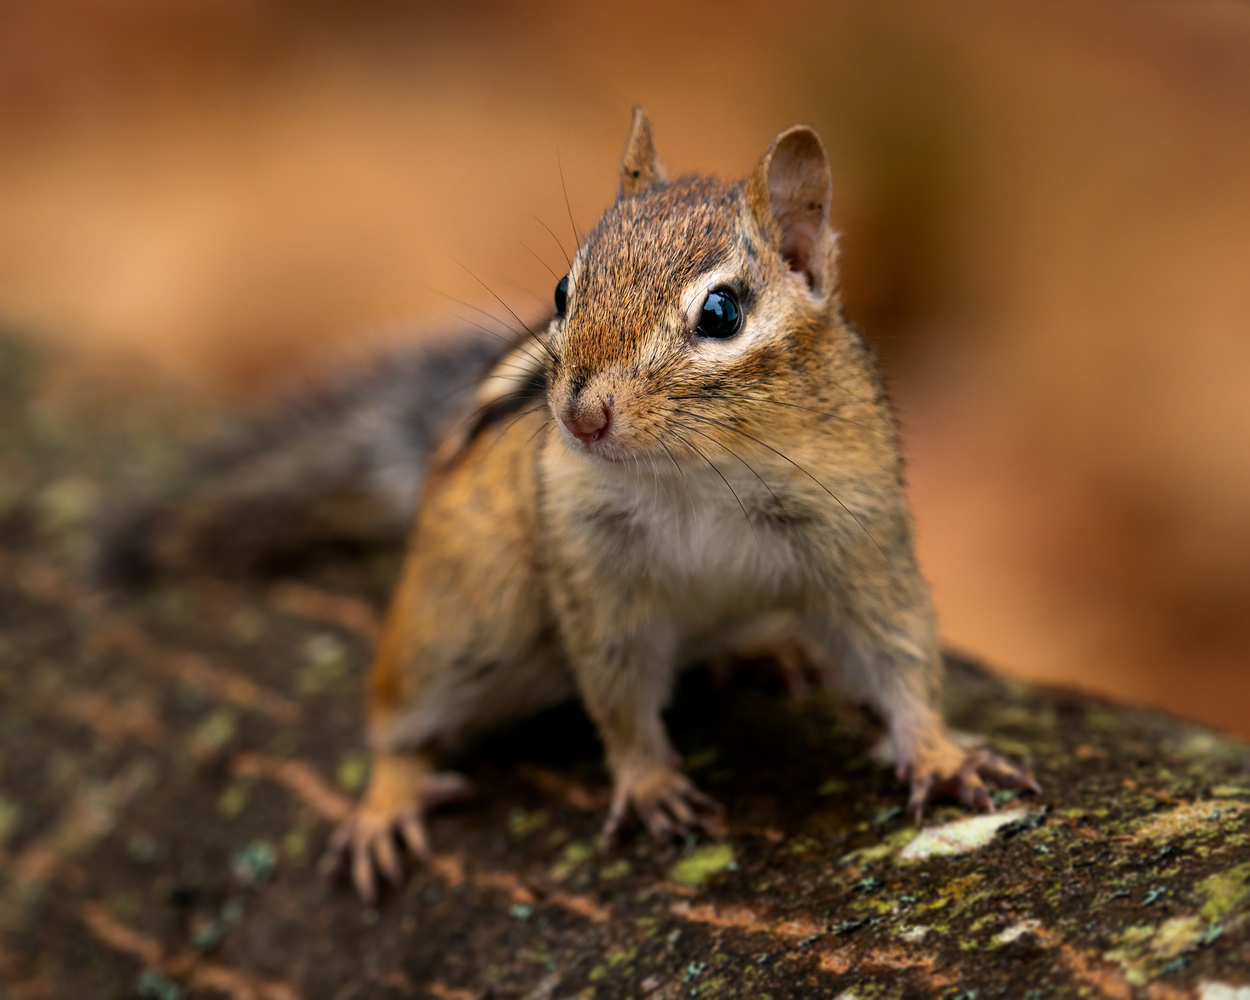 Chipmunk by Skyler Ewing